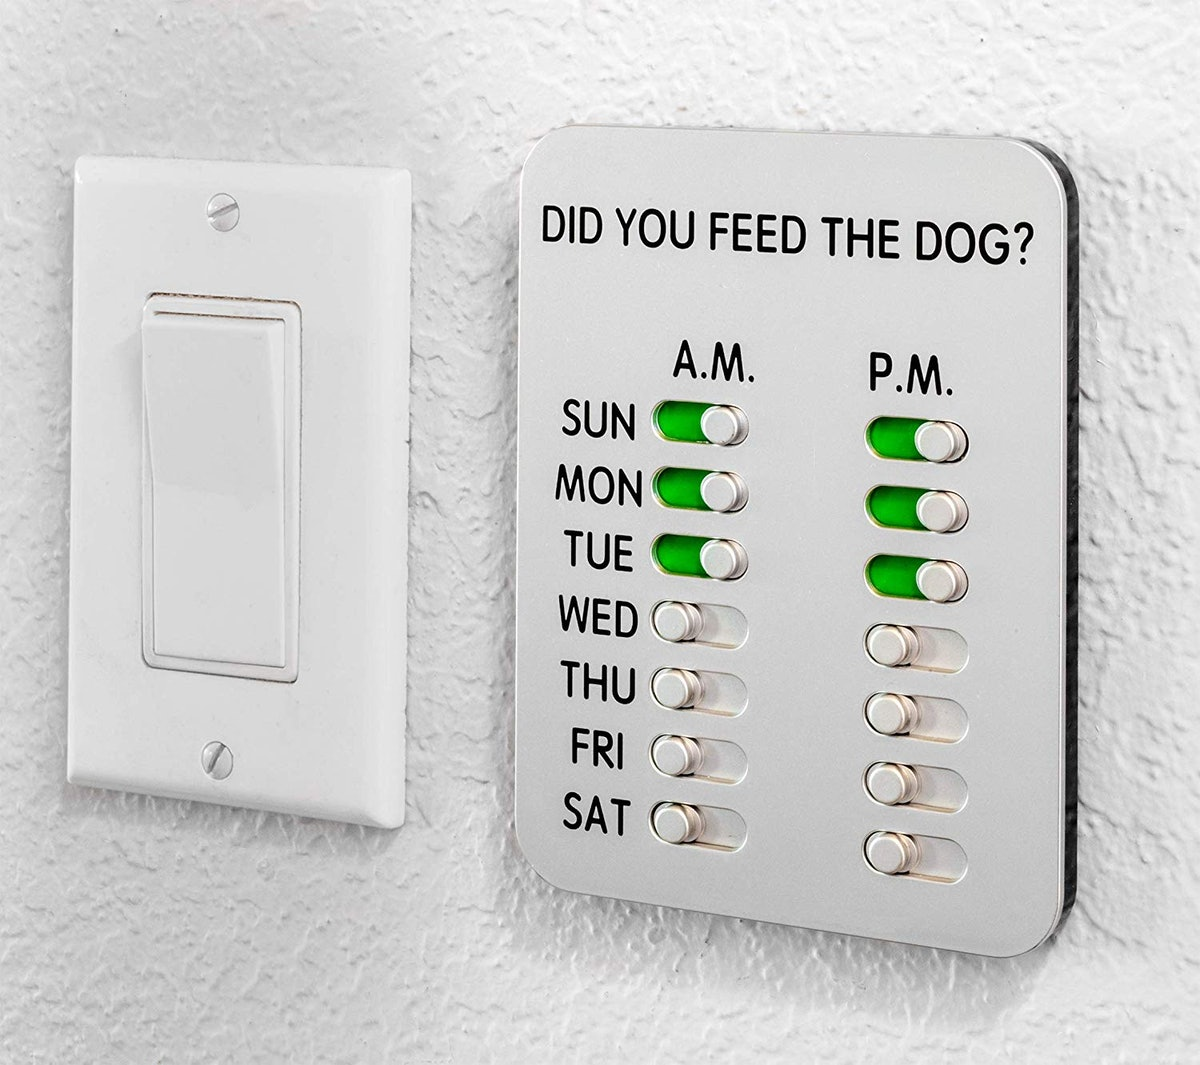 Did You Feed The Dog?